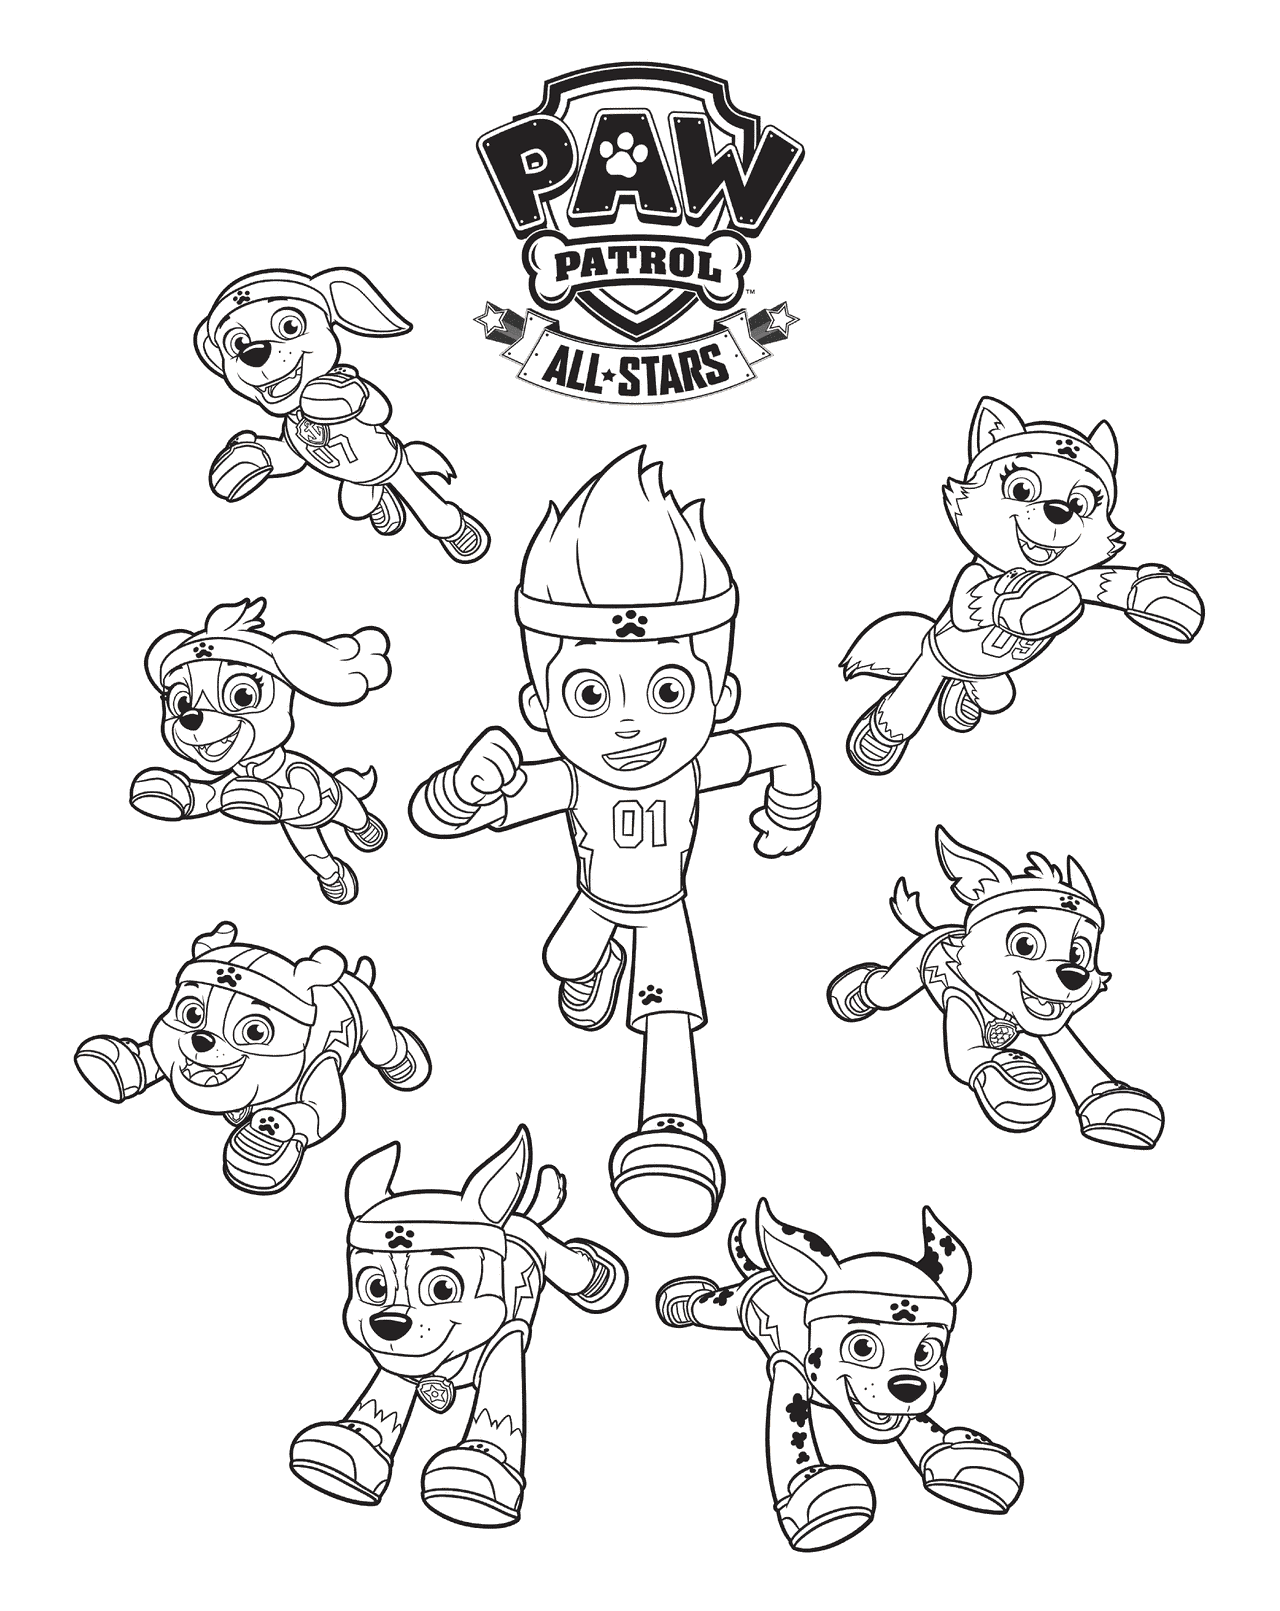 All Stars Paw Patrol Coloring Page